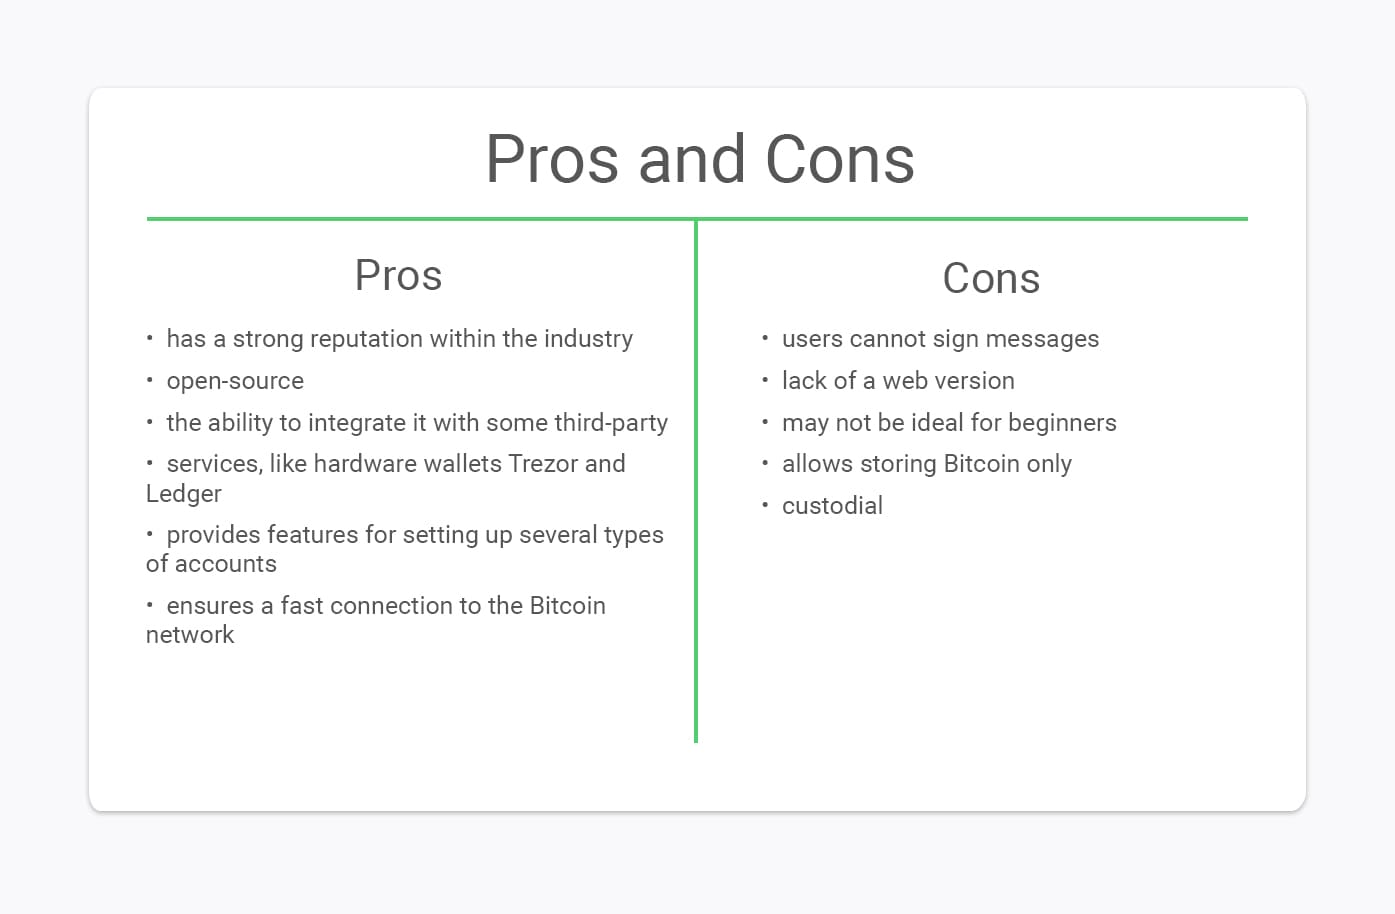 mycelium wallet pros and cons